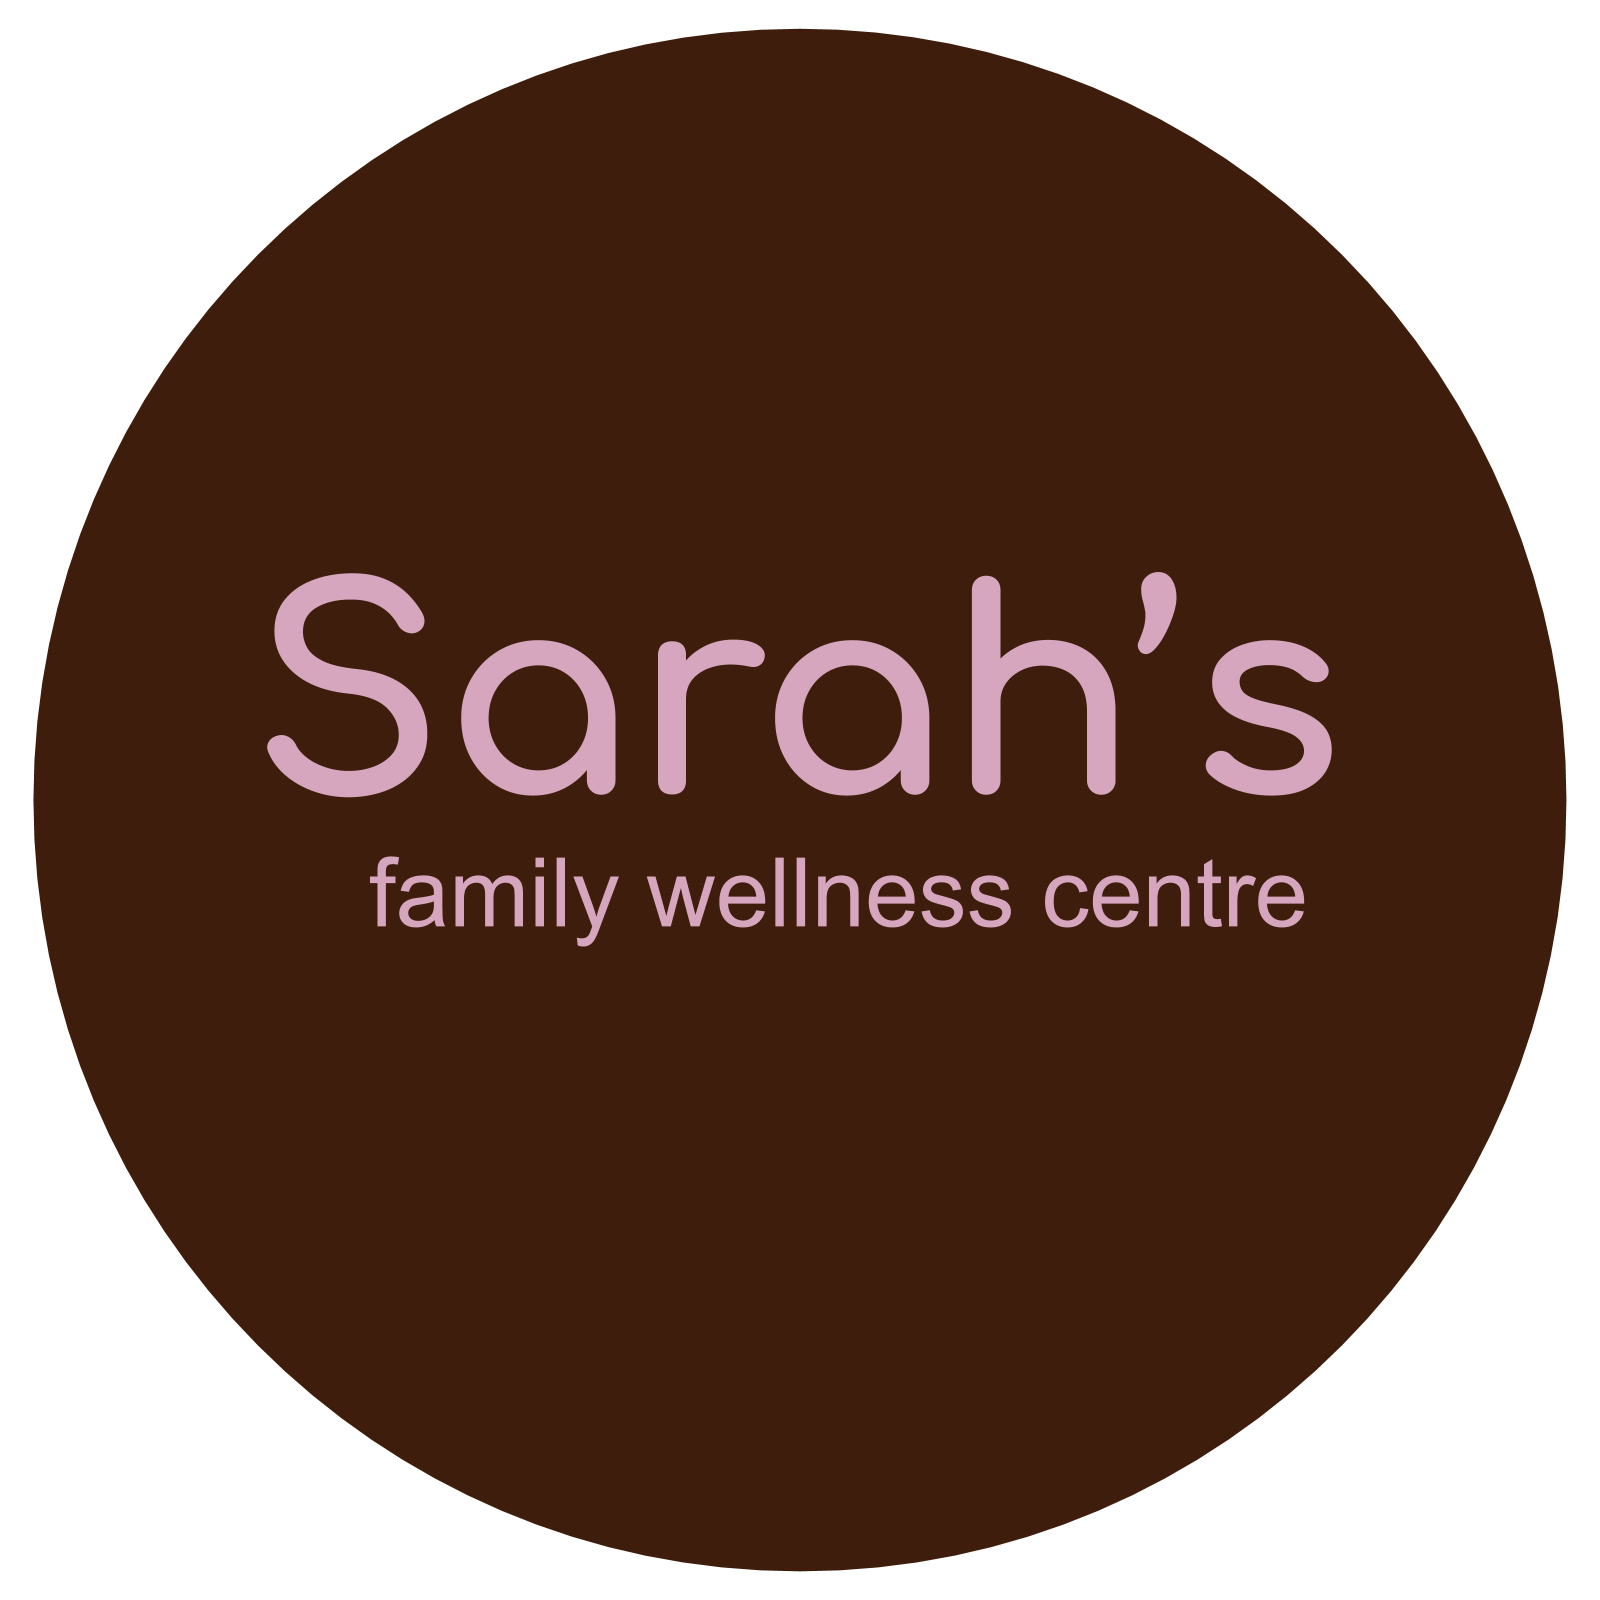 Sarah's Family Wellness Centre